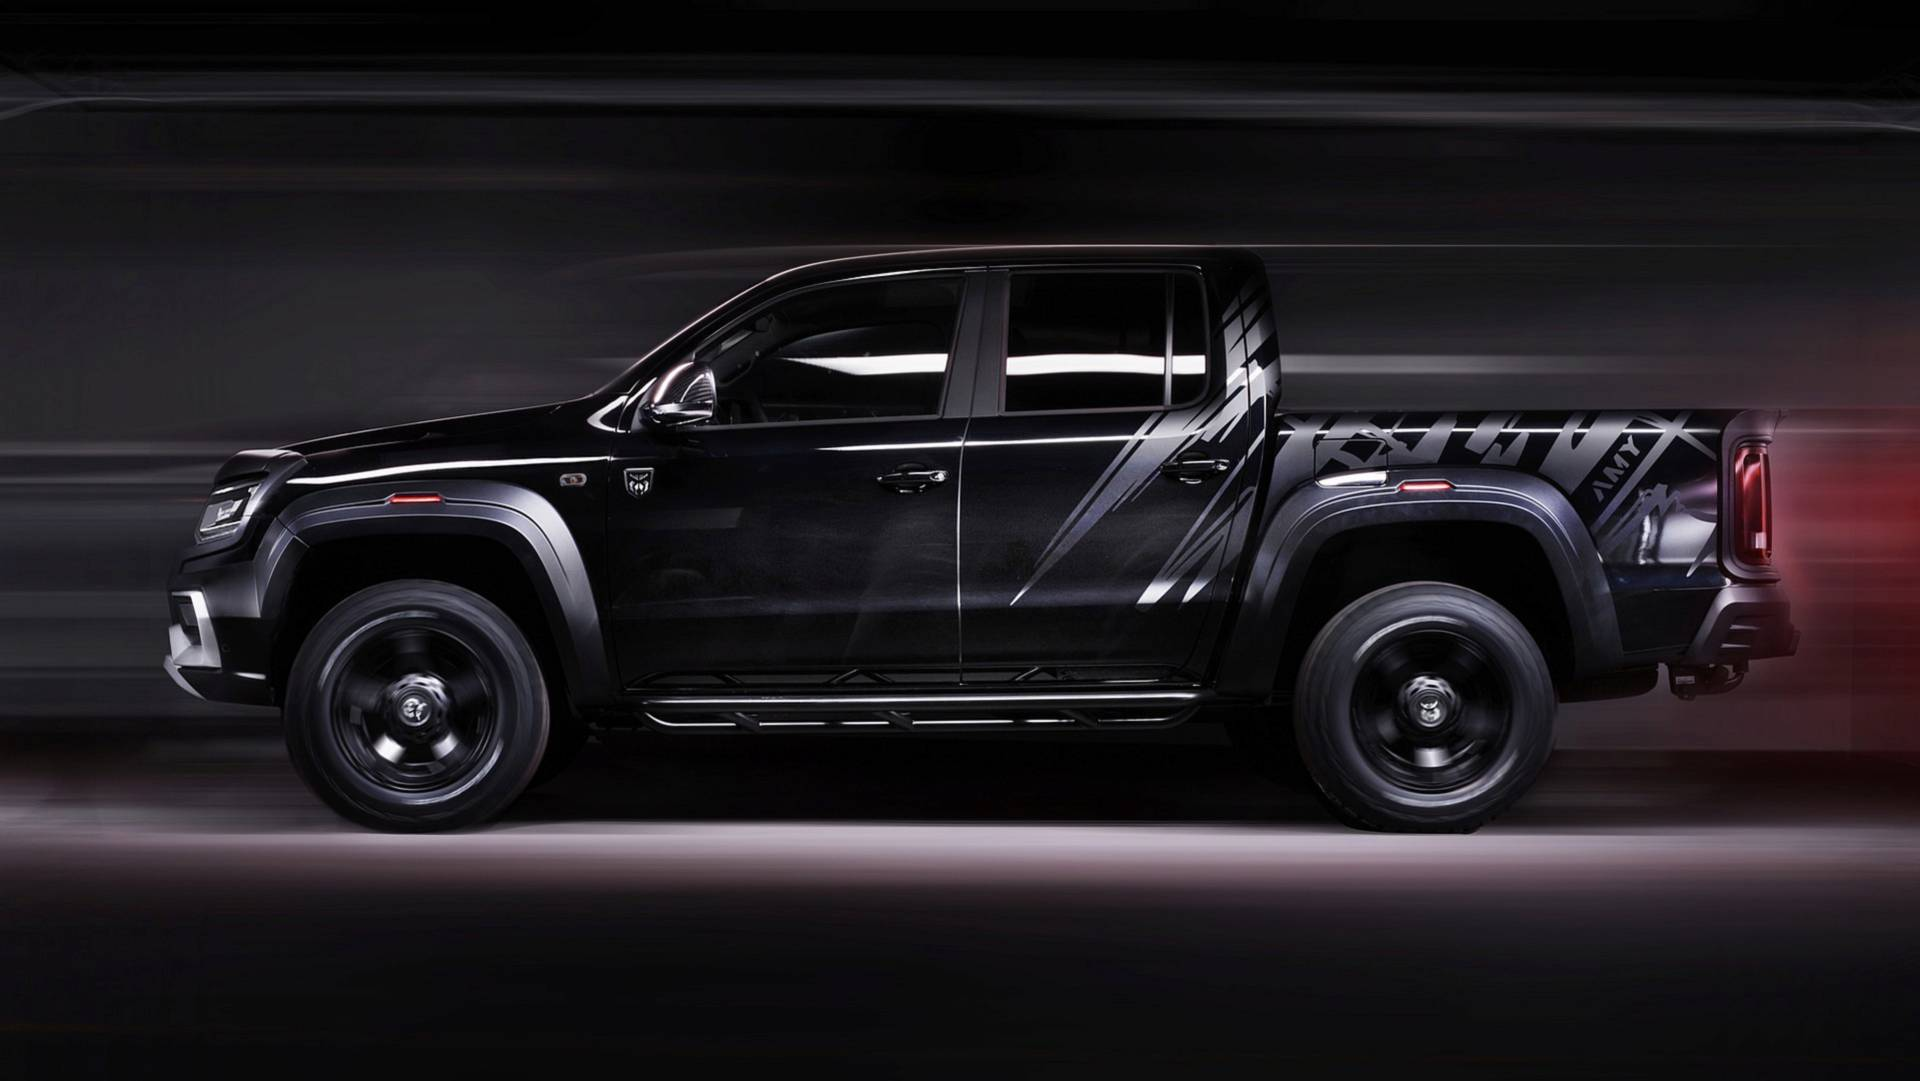 Volkswagen Amarok Amy by Carlex Design (7)